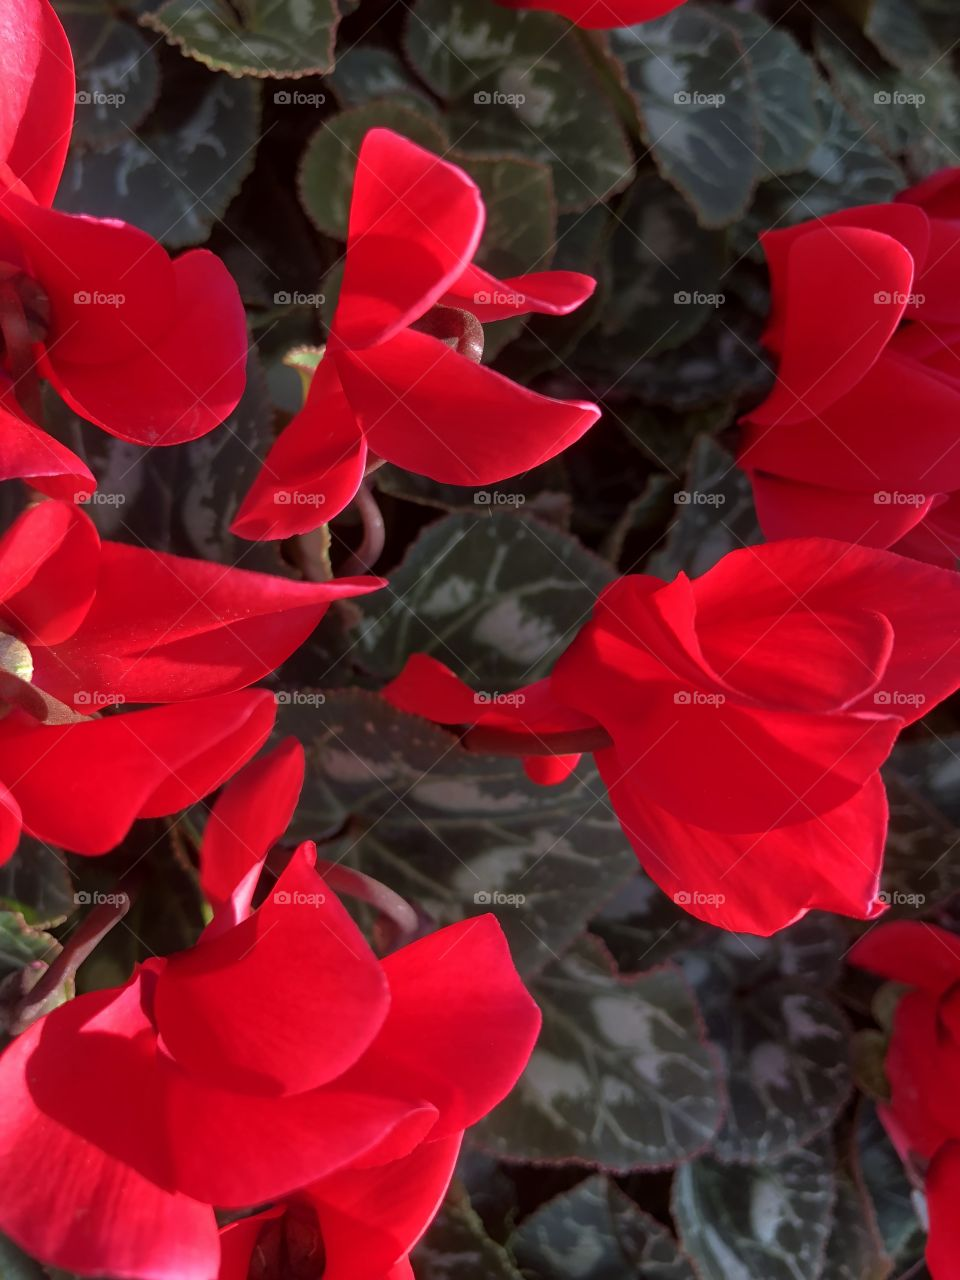 These cyclamen are fantastical, because that red is so massively appealing and very suitable for ones Valentine.